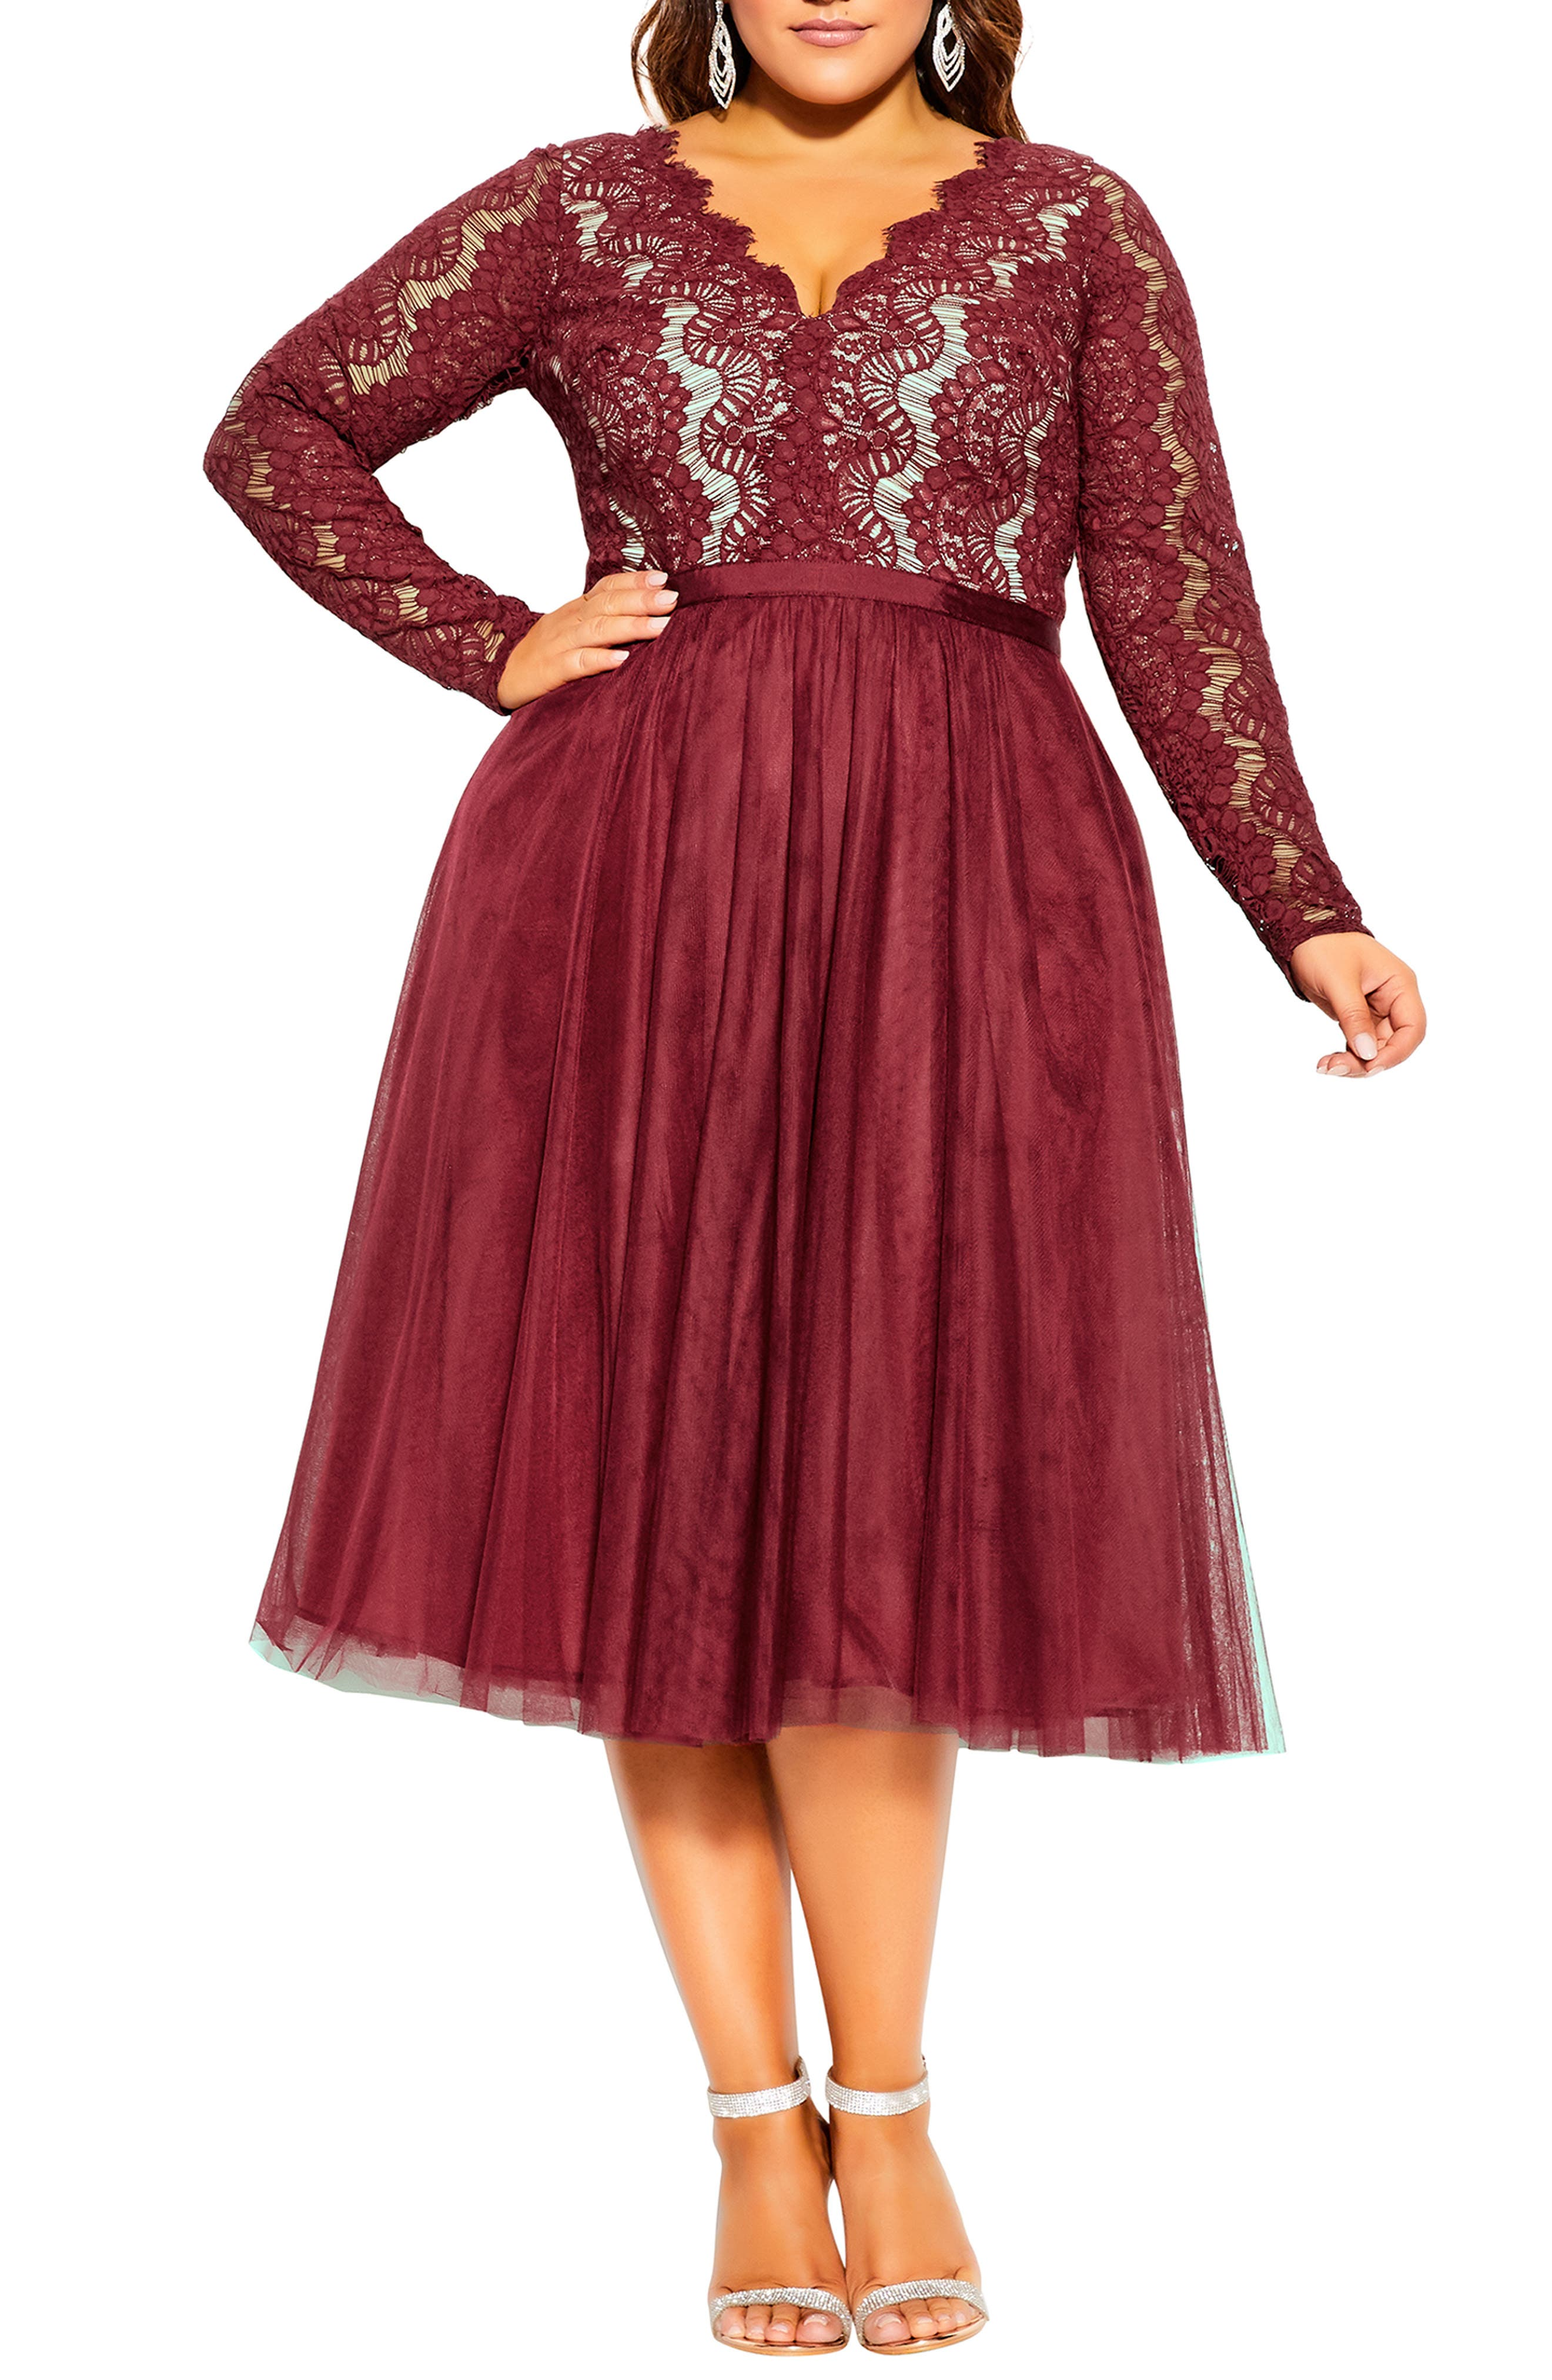 1950s Plus Size Dresses, Swing Dresses Plus Size Womens City Chic Rare Beauty Lace Fit  Flare Dress Size X-Large - Red $118.30 AT vintagedancer.com